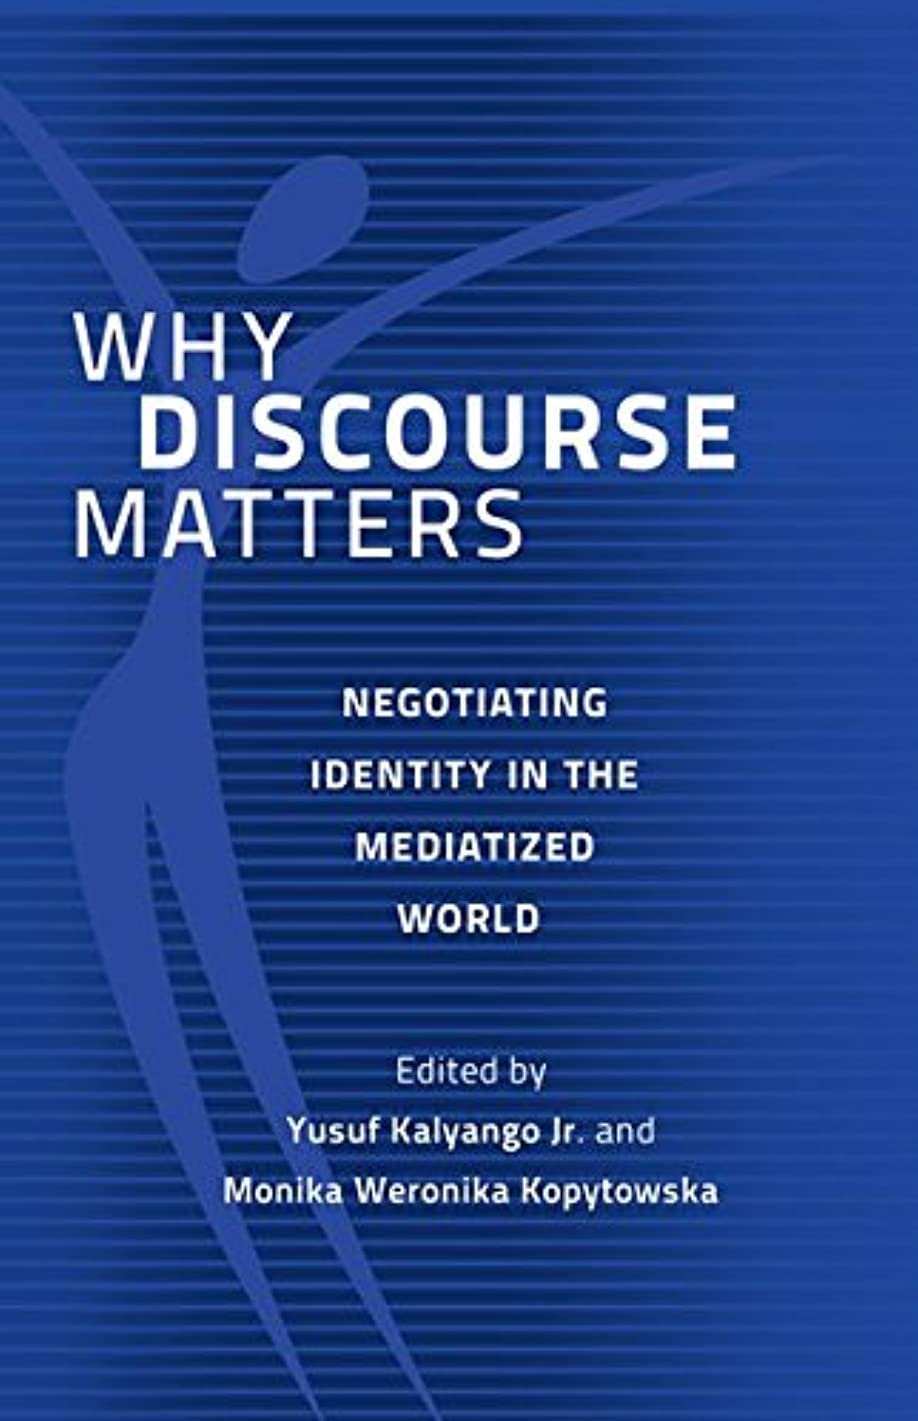 Why Discourse Matters: Negotiating Identity in the Mediatized World